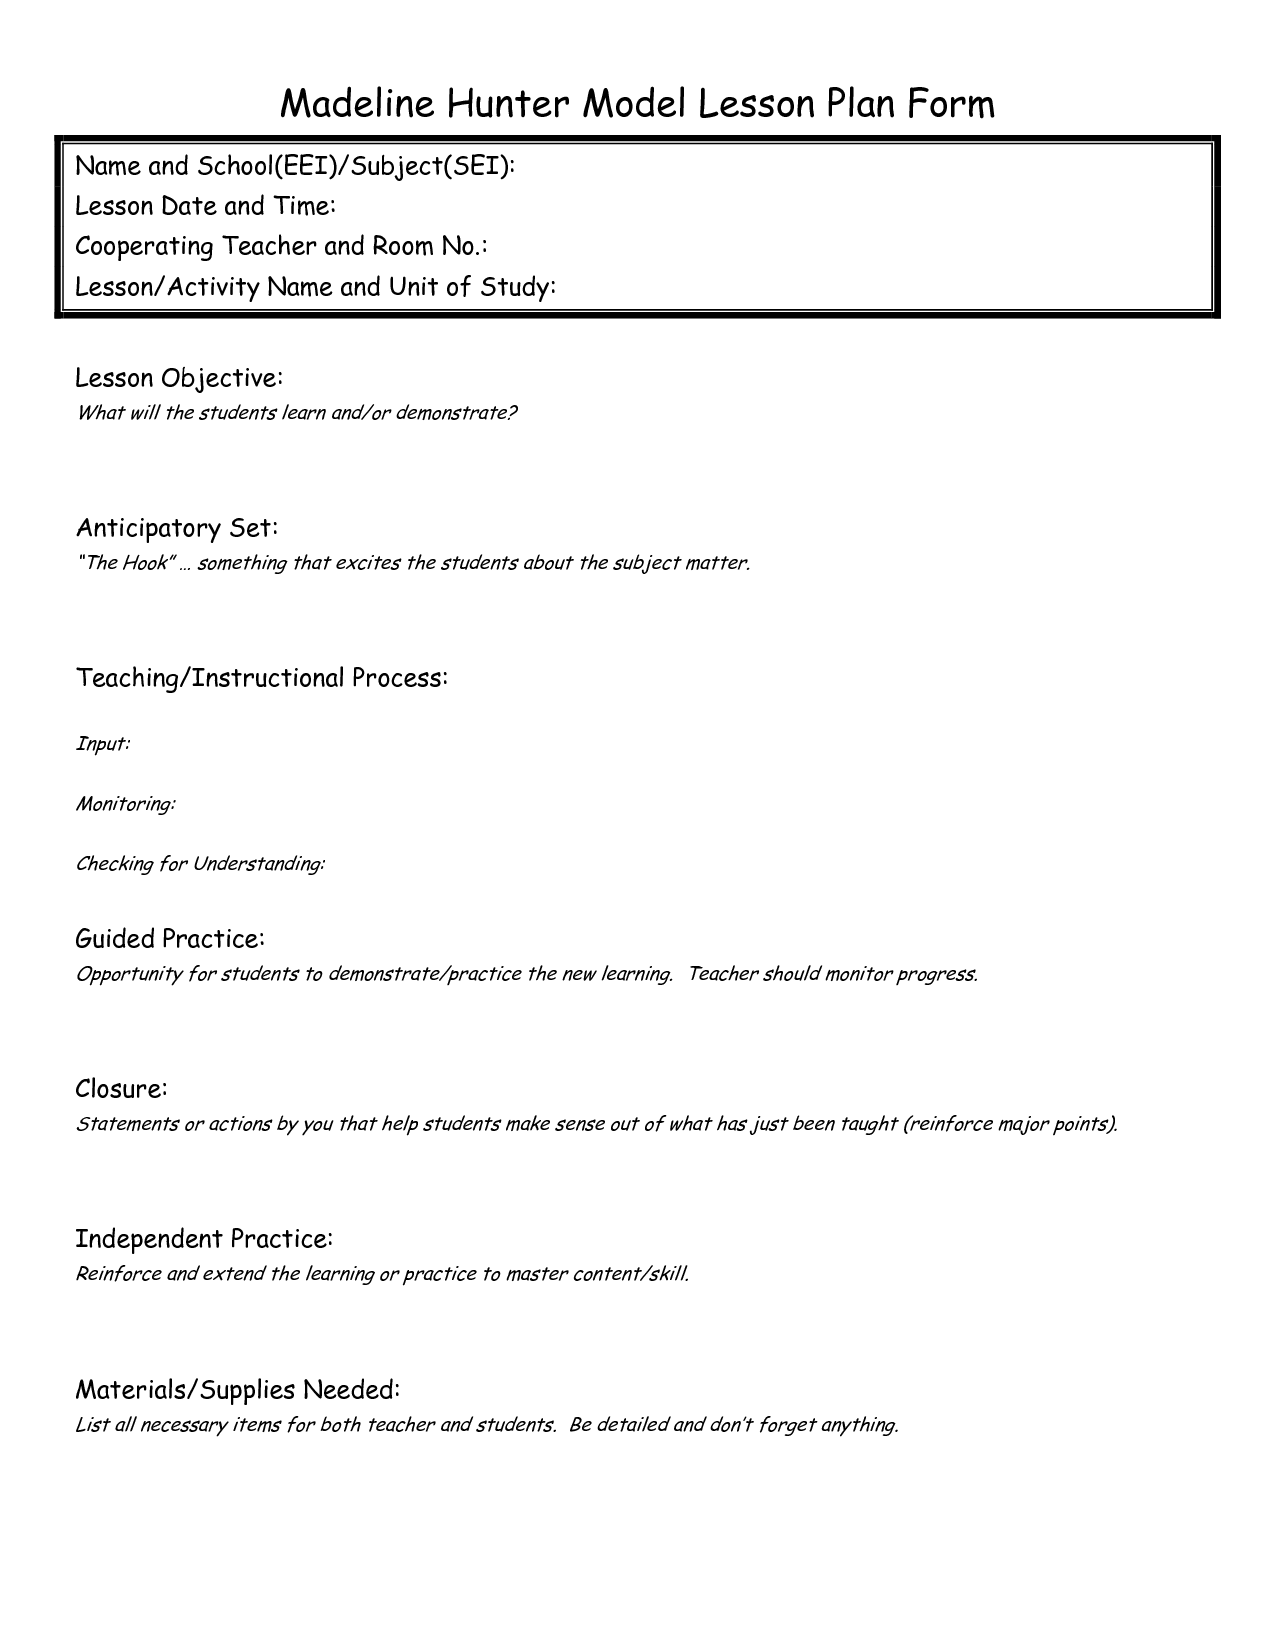 Madeline Hunter Lesson Plan Format Template Google Search Th - Madeline hunter lesson plan blank template